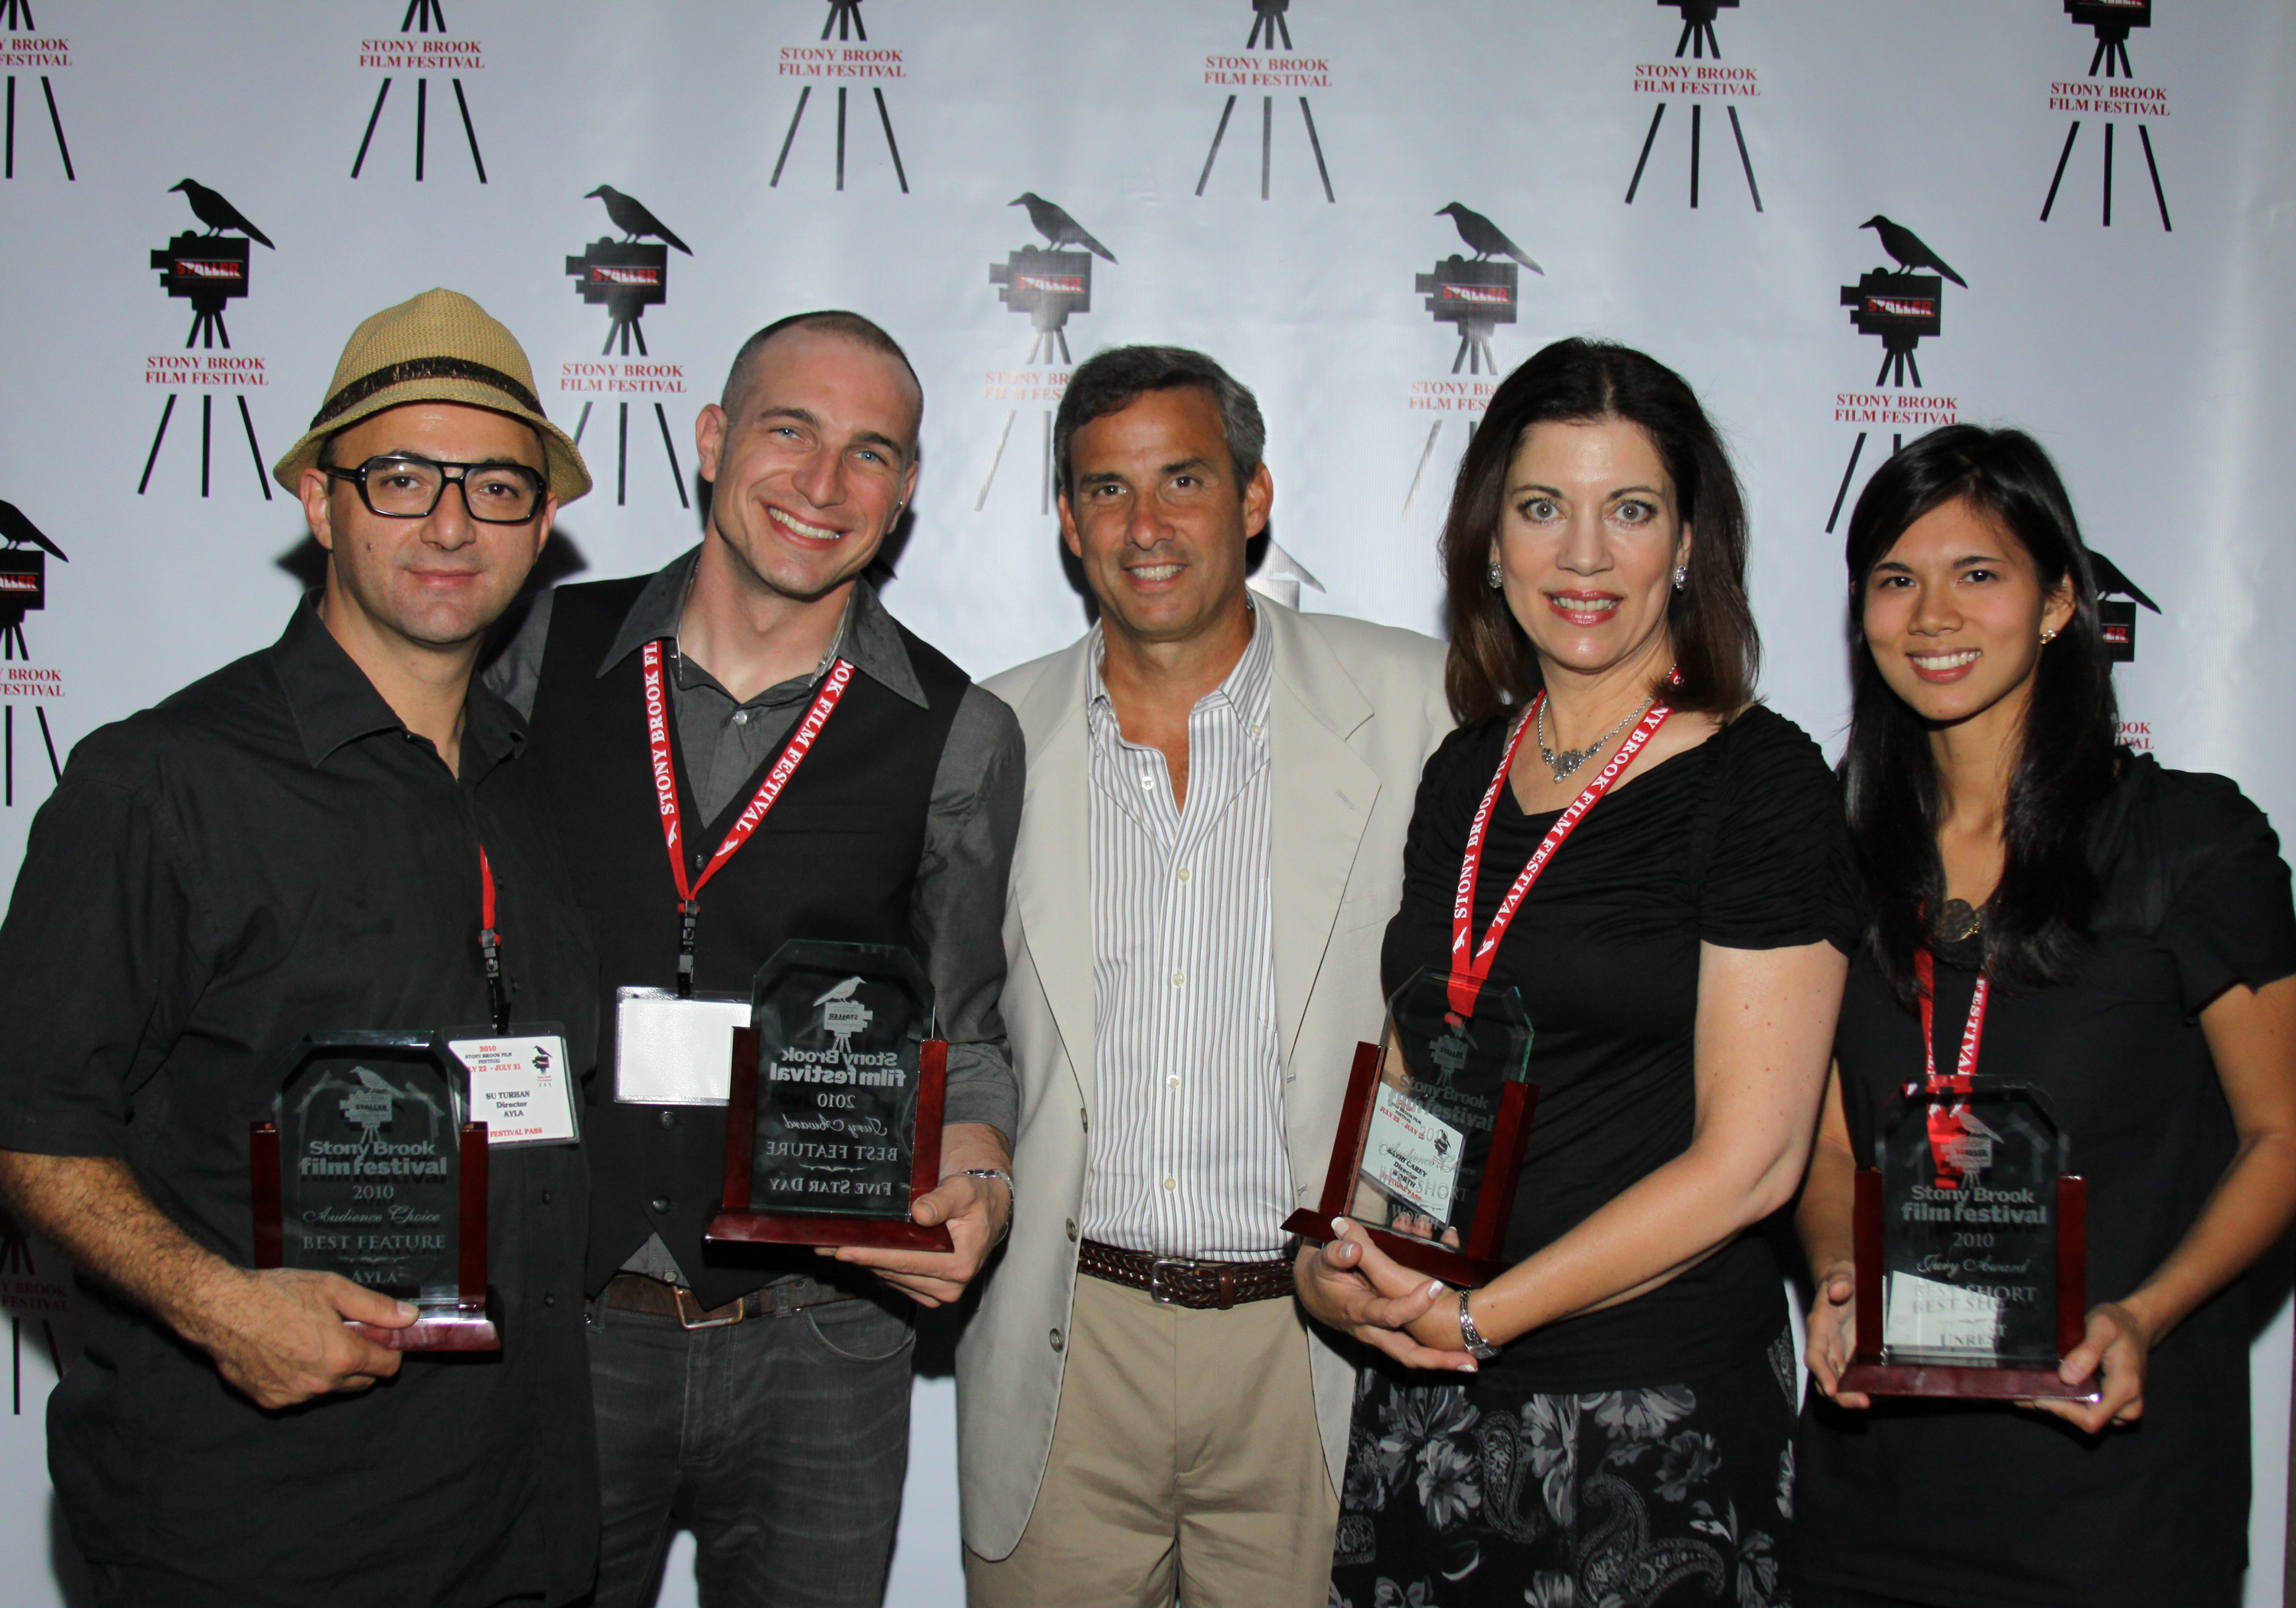 From left: Su Turhan, director of Ayla; Danny Buday, director of Five Star Day; Film Festival Founder and Director Alan Inkles; Kathi Carey, director of Worth; Marie Pineda, producer of Unrest